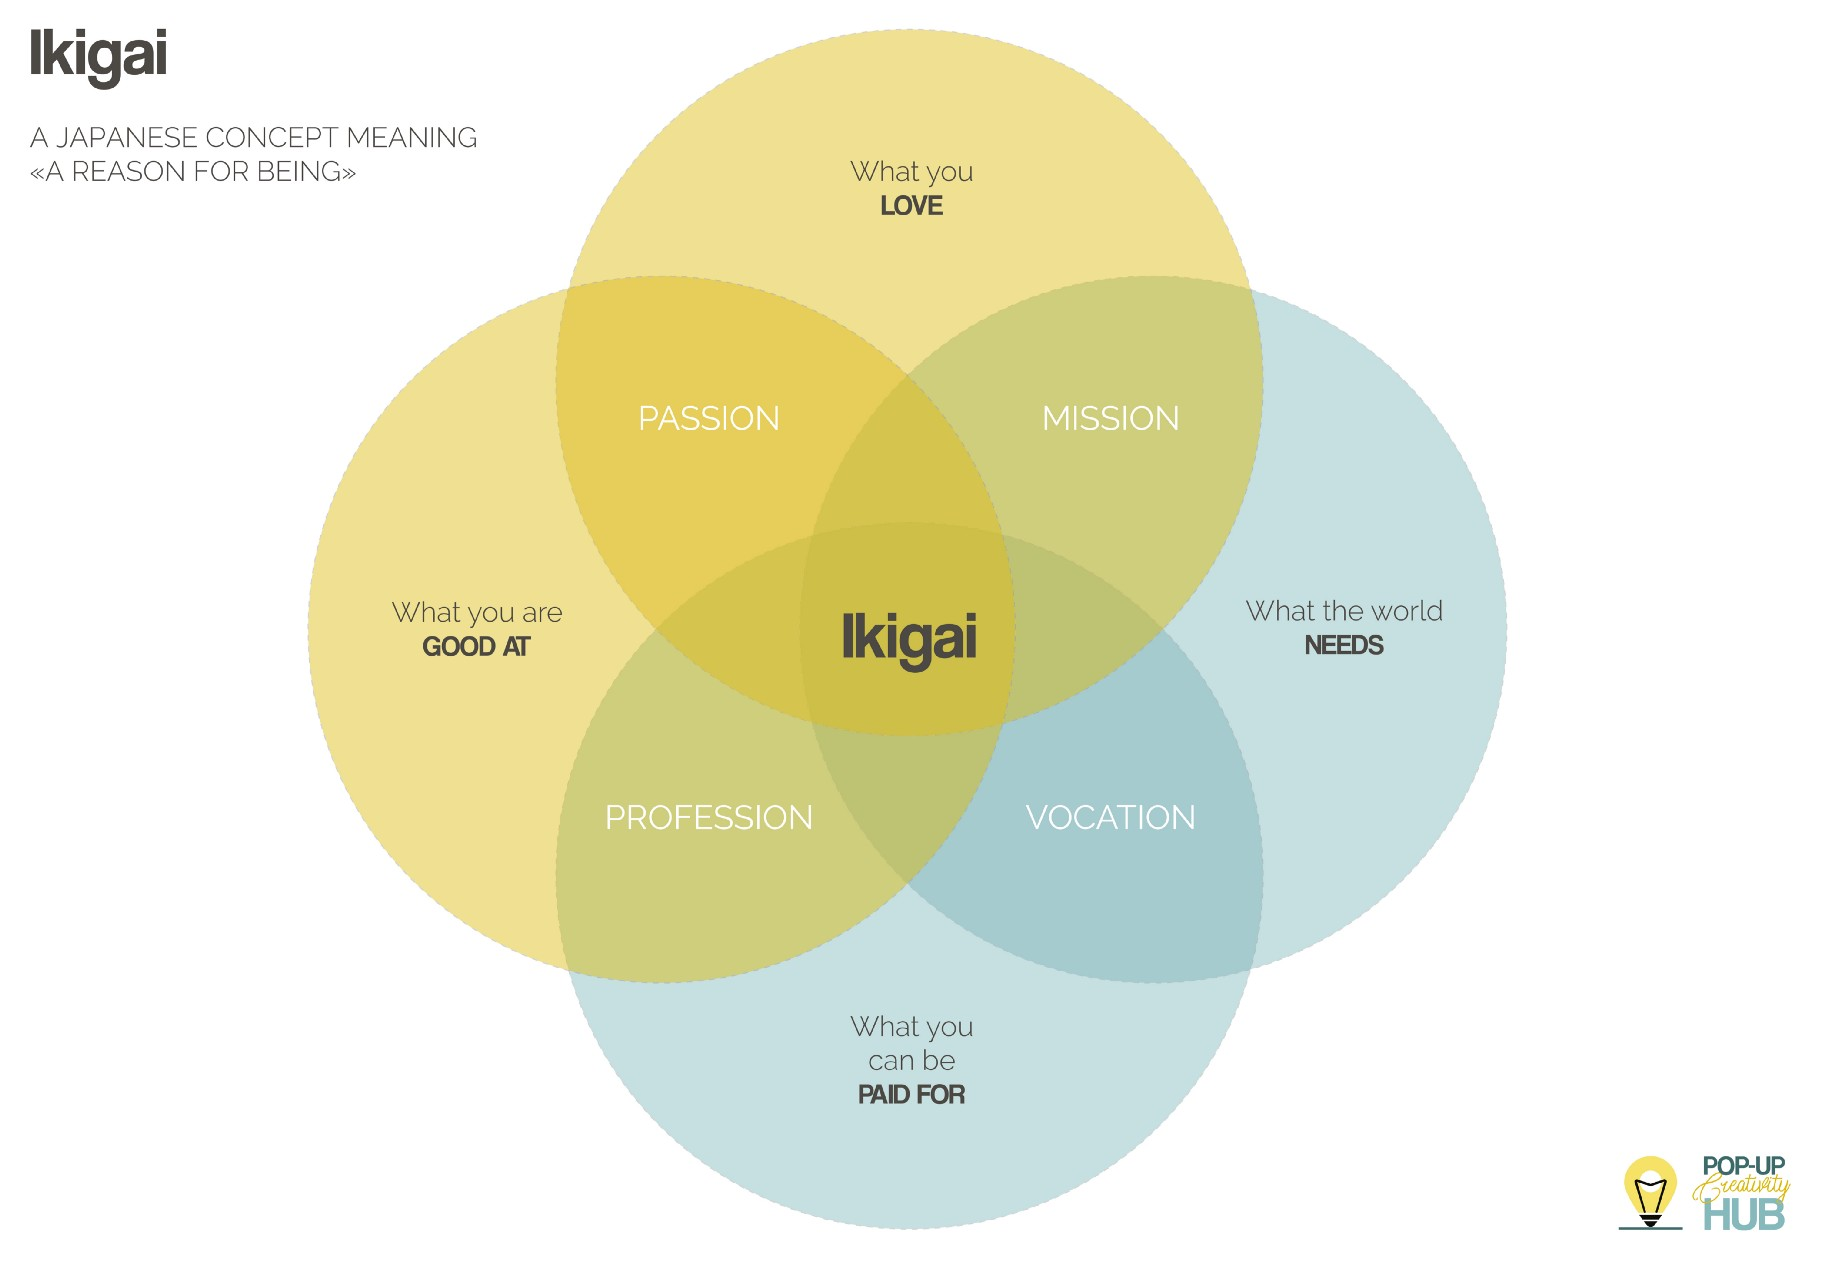 Finding Your Purpose Through Ikigai (PCH #2) - Pop-Up Creativity Hub